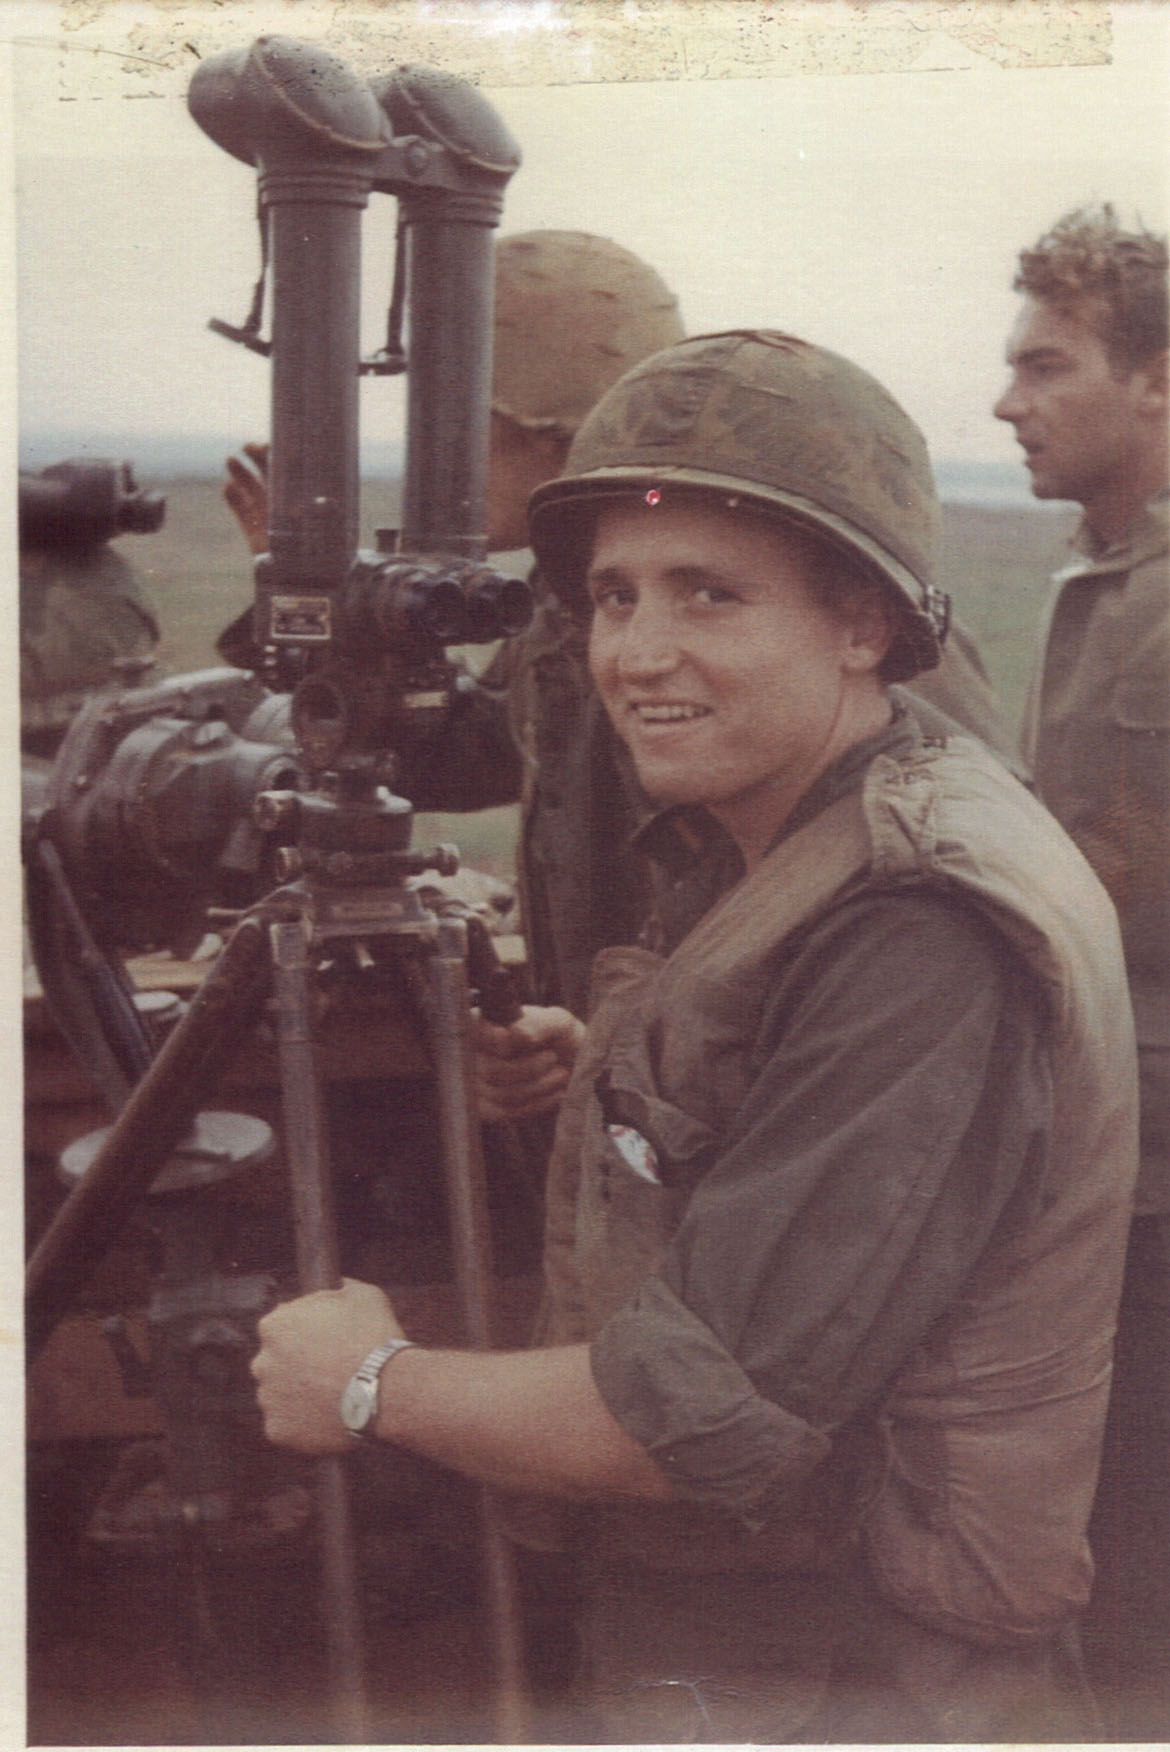 Patterson in Gio Lihn looking at the DMZ, October 1967.